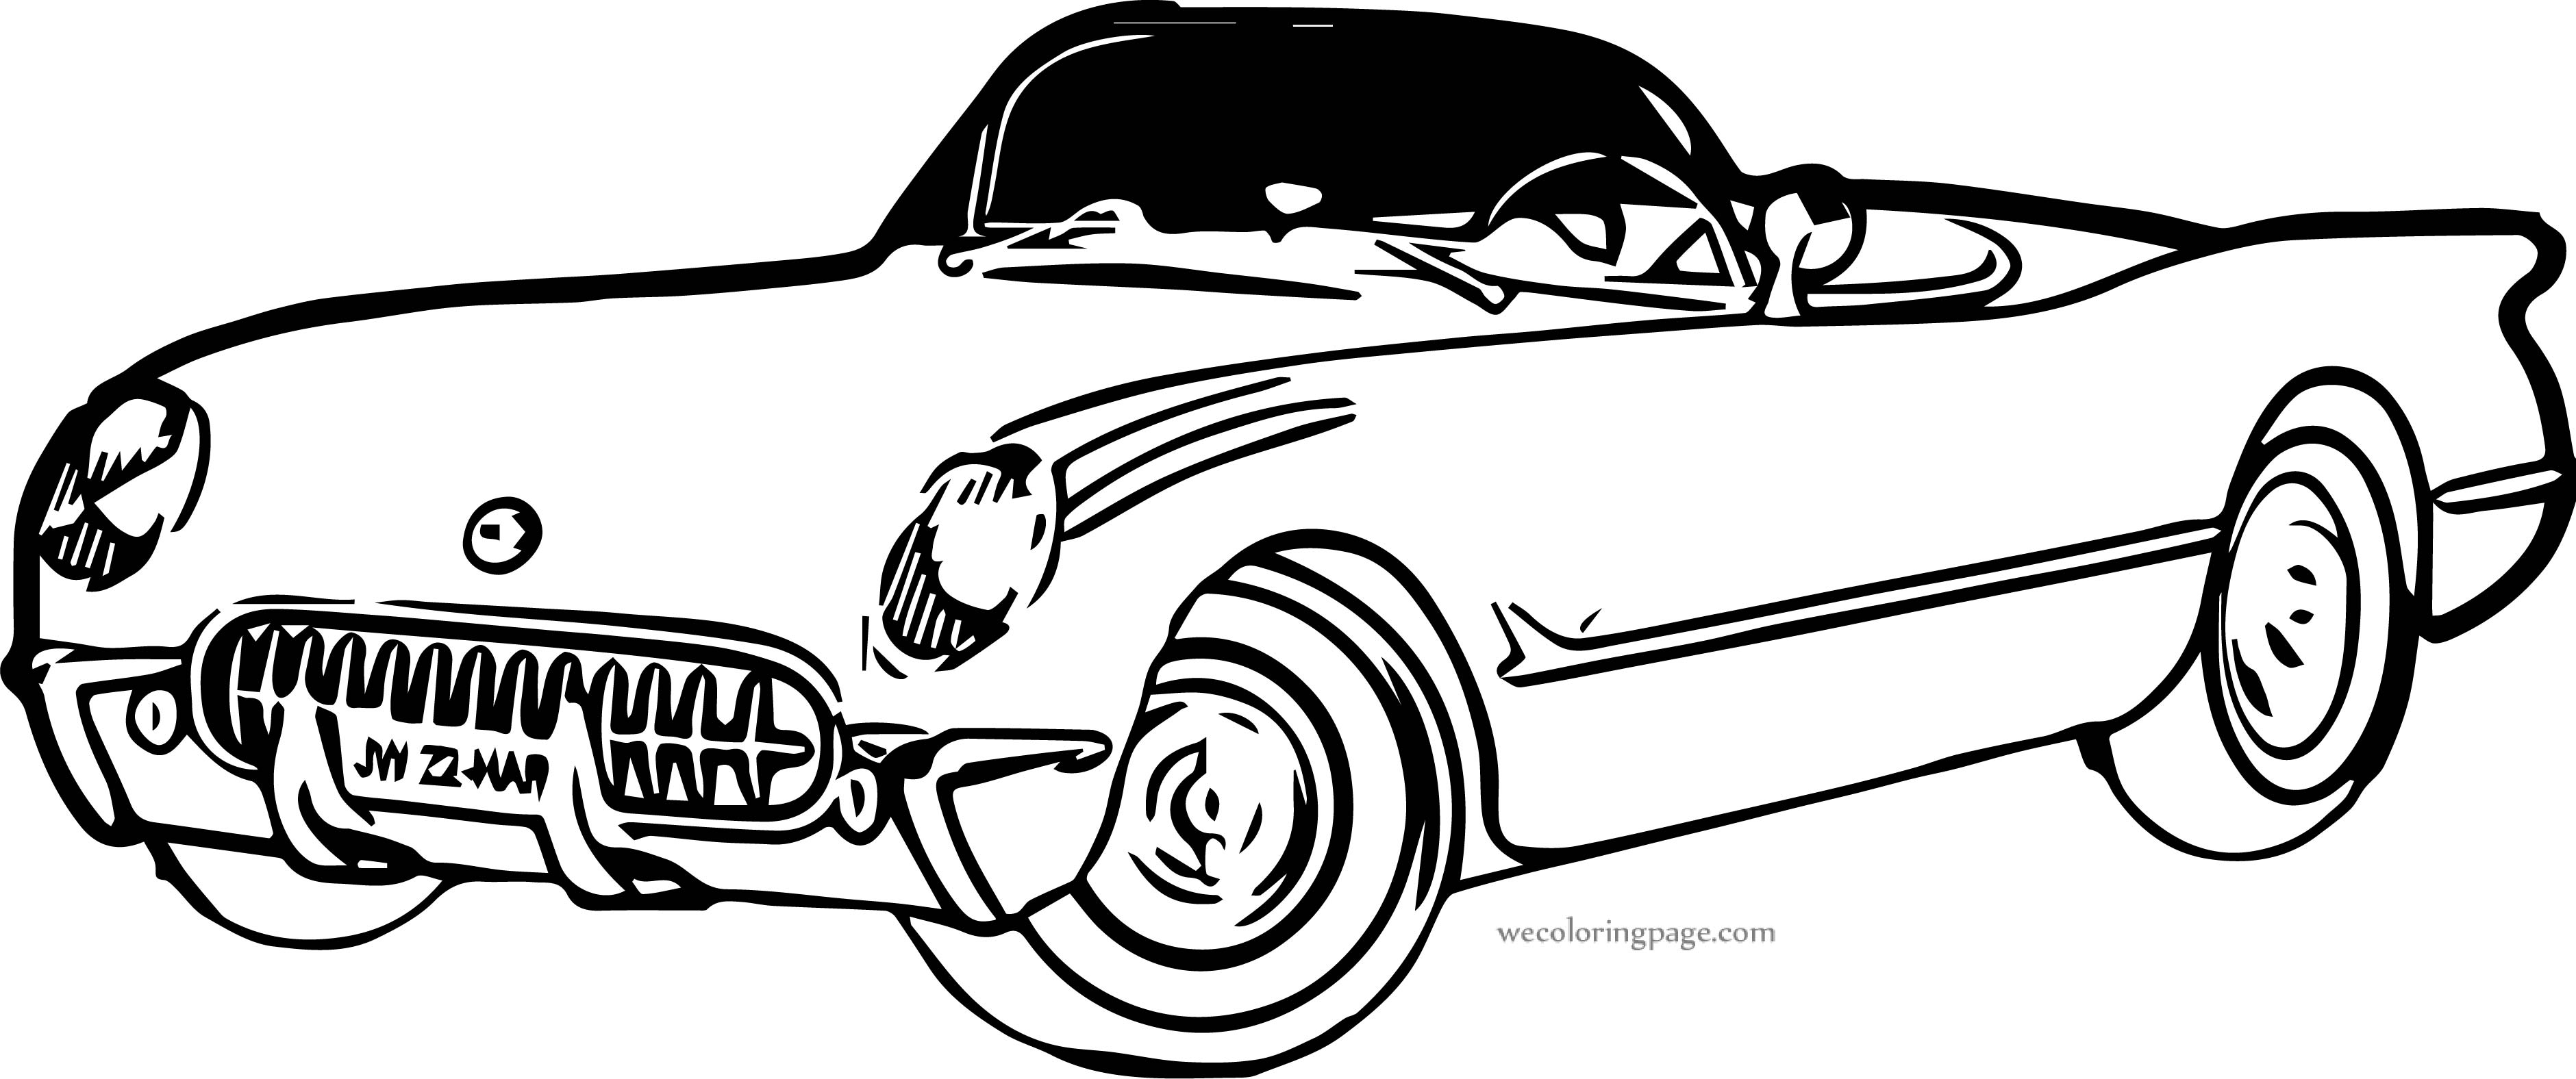 Car Wecoloringpage Coloring Page 177